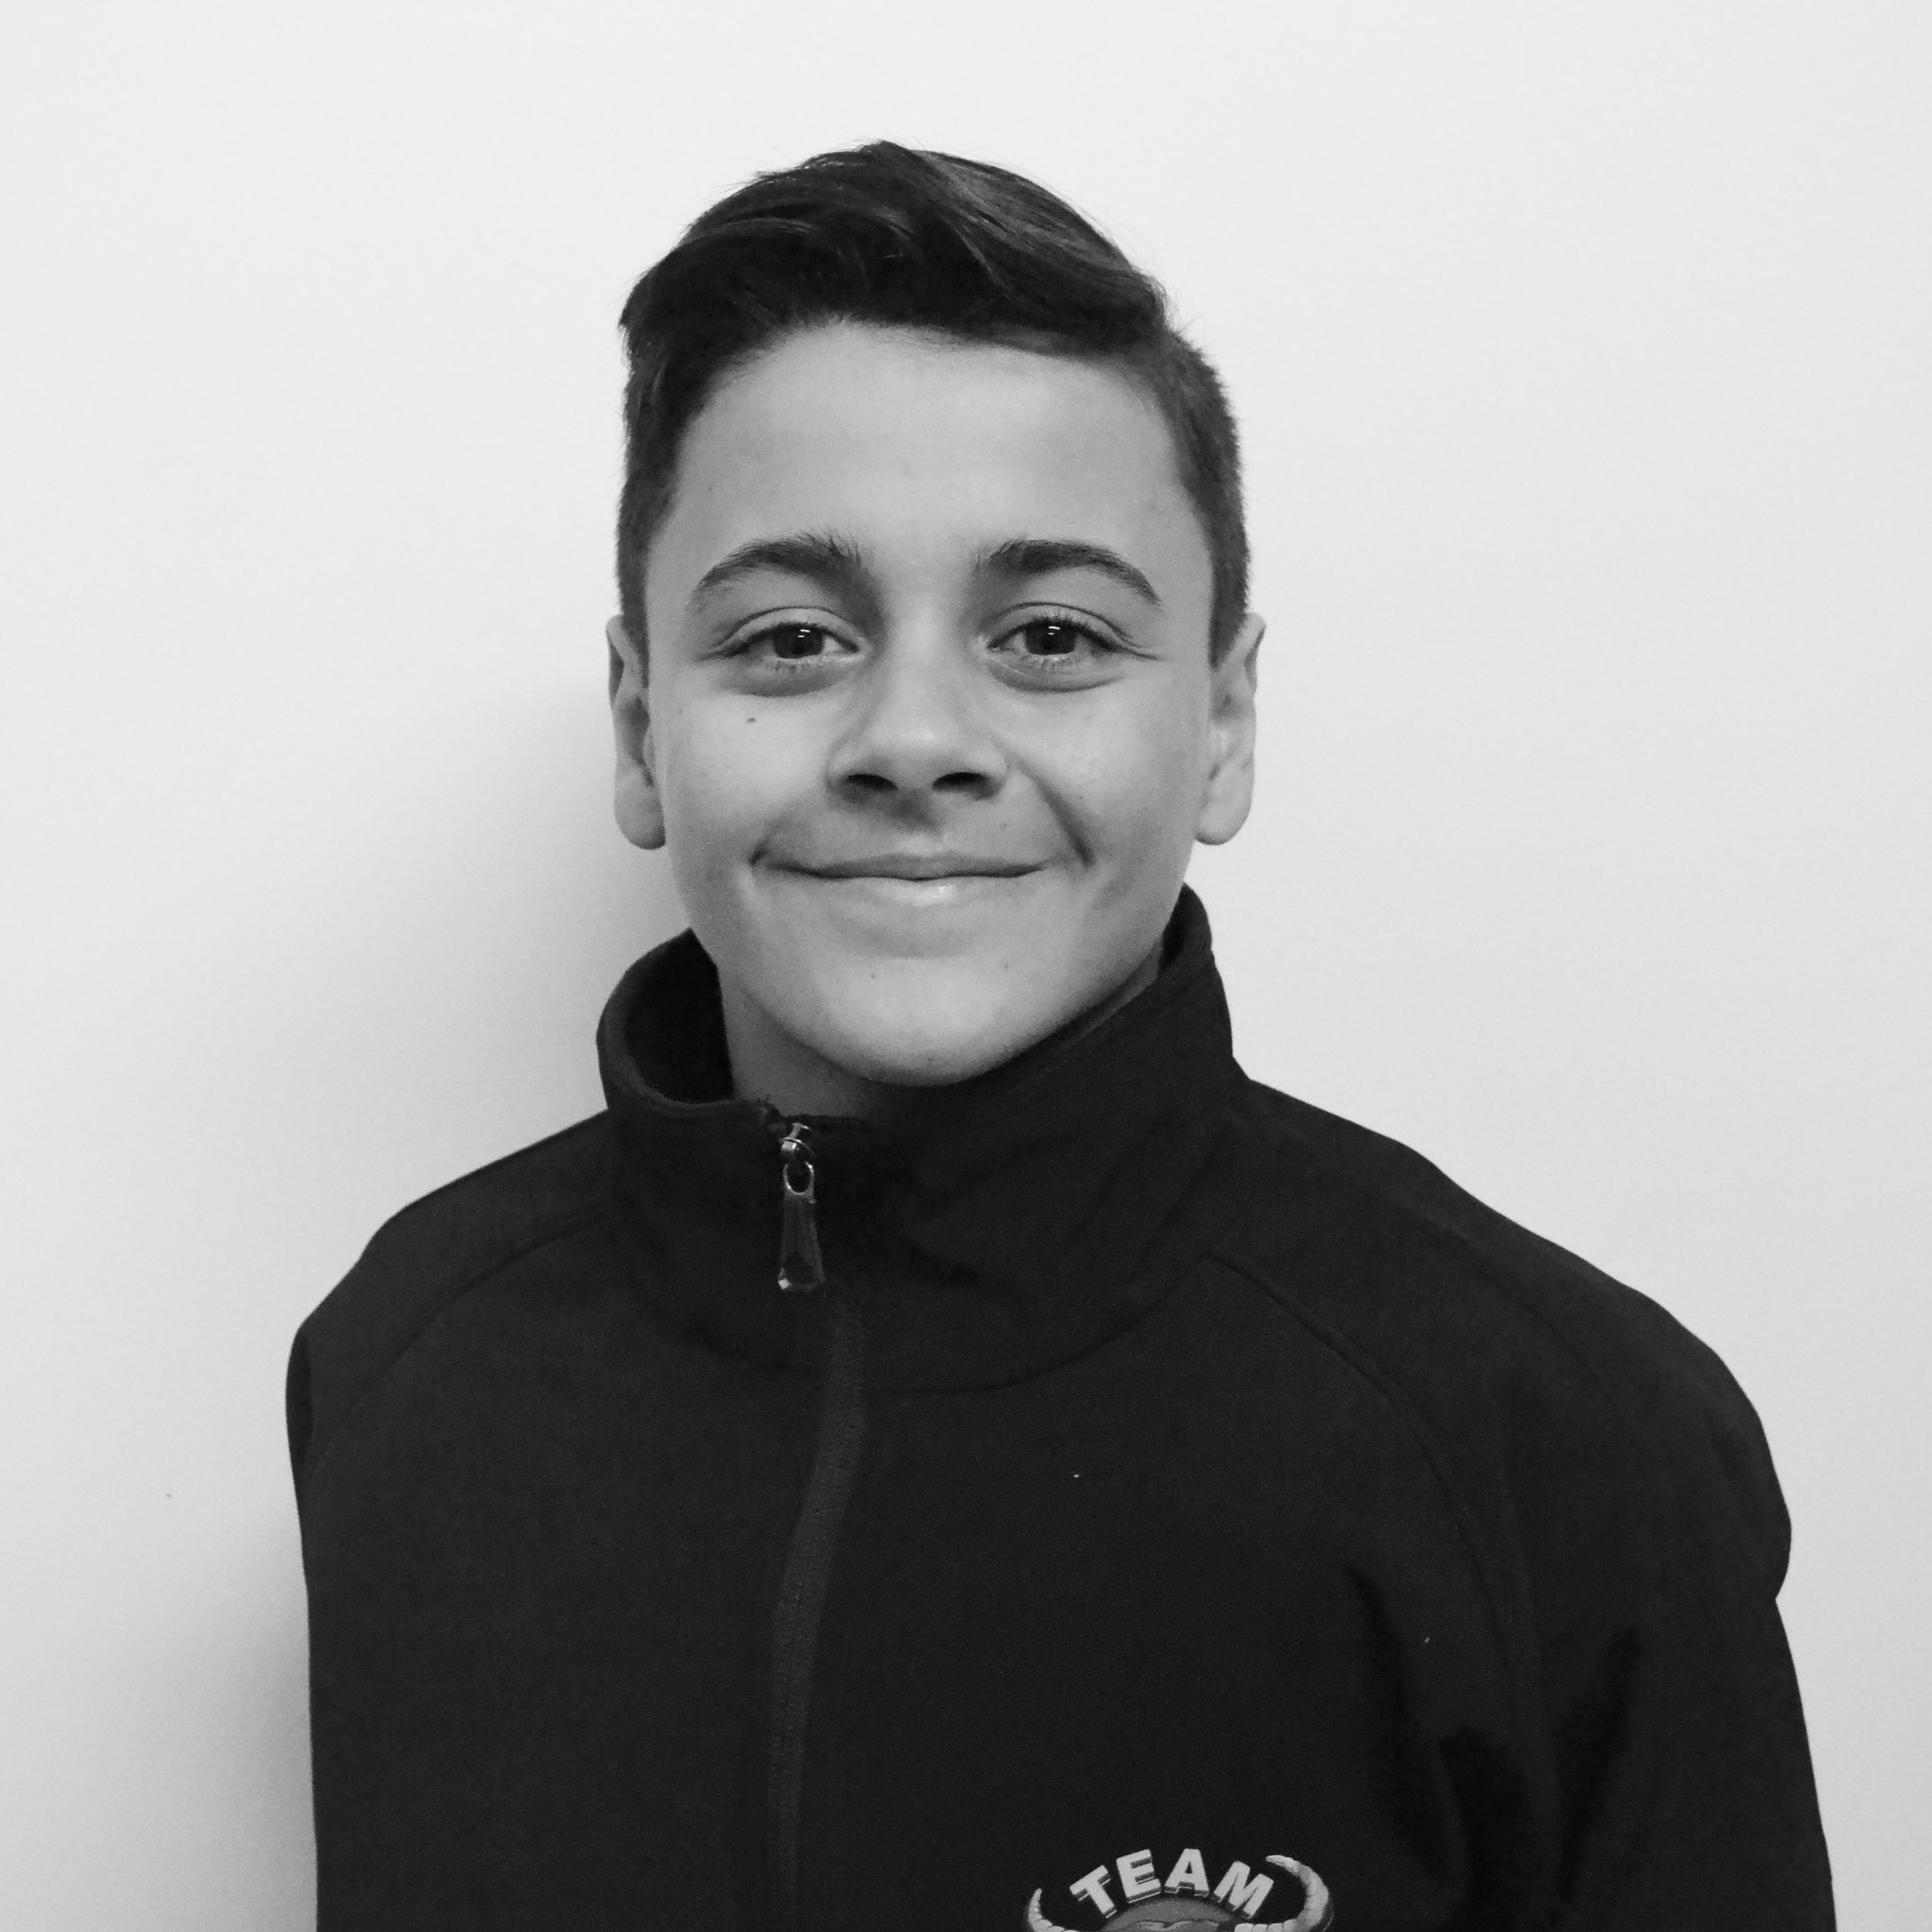 Liam - Junior Coach (Volunteer)